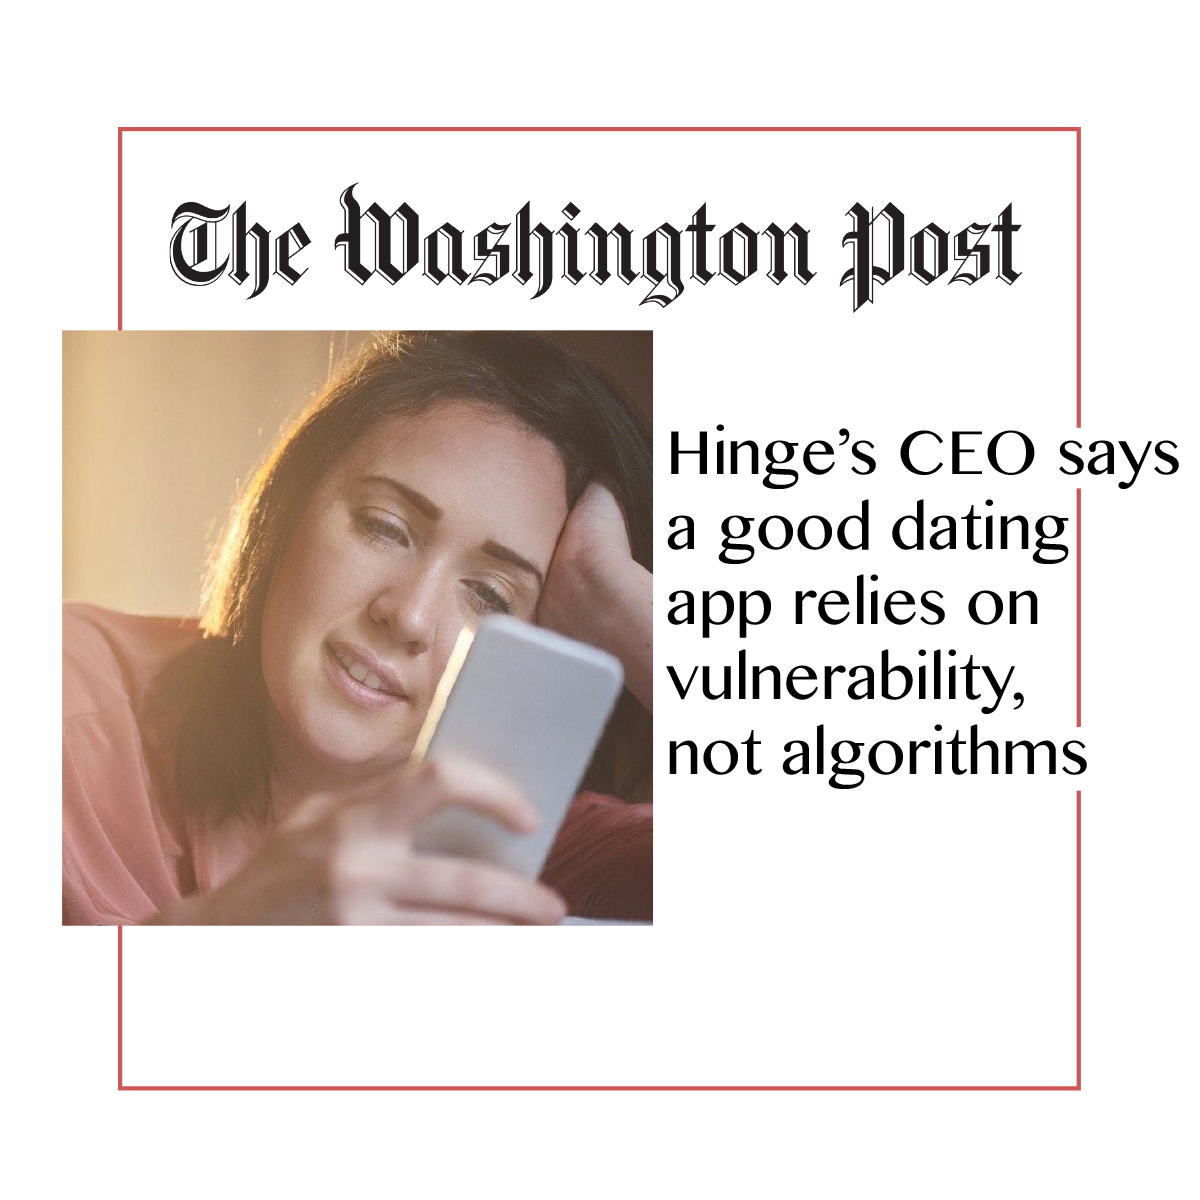 The Washington Post + Hinge